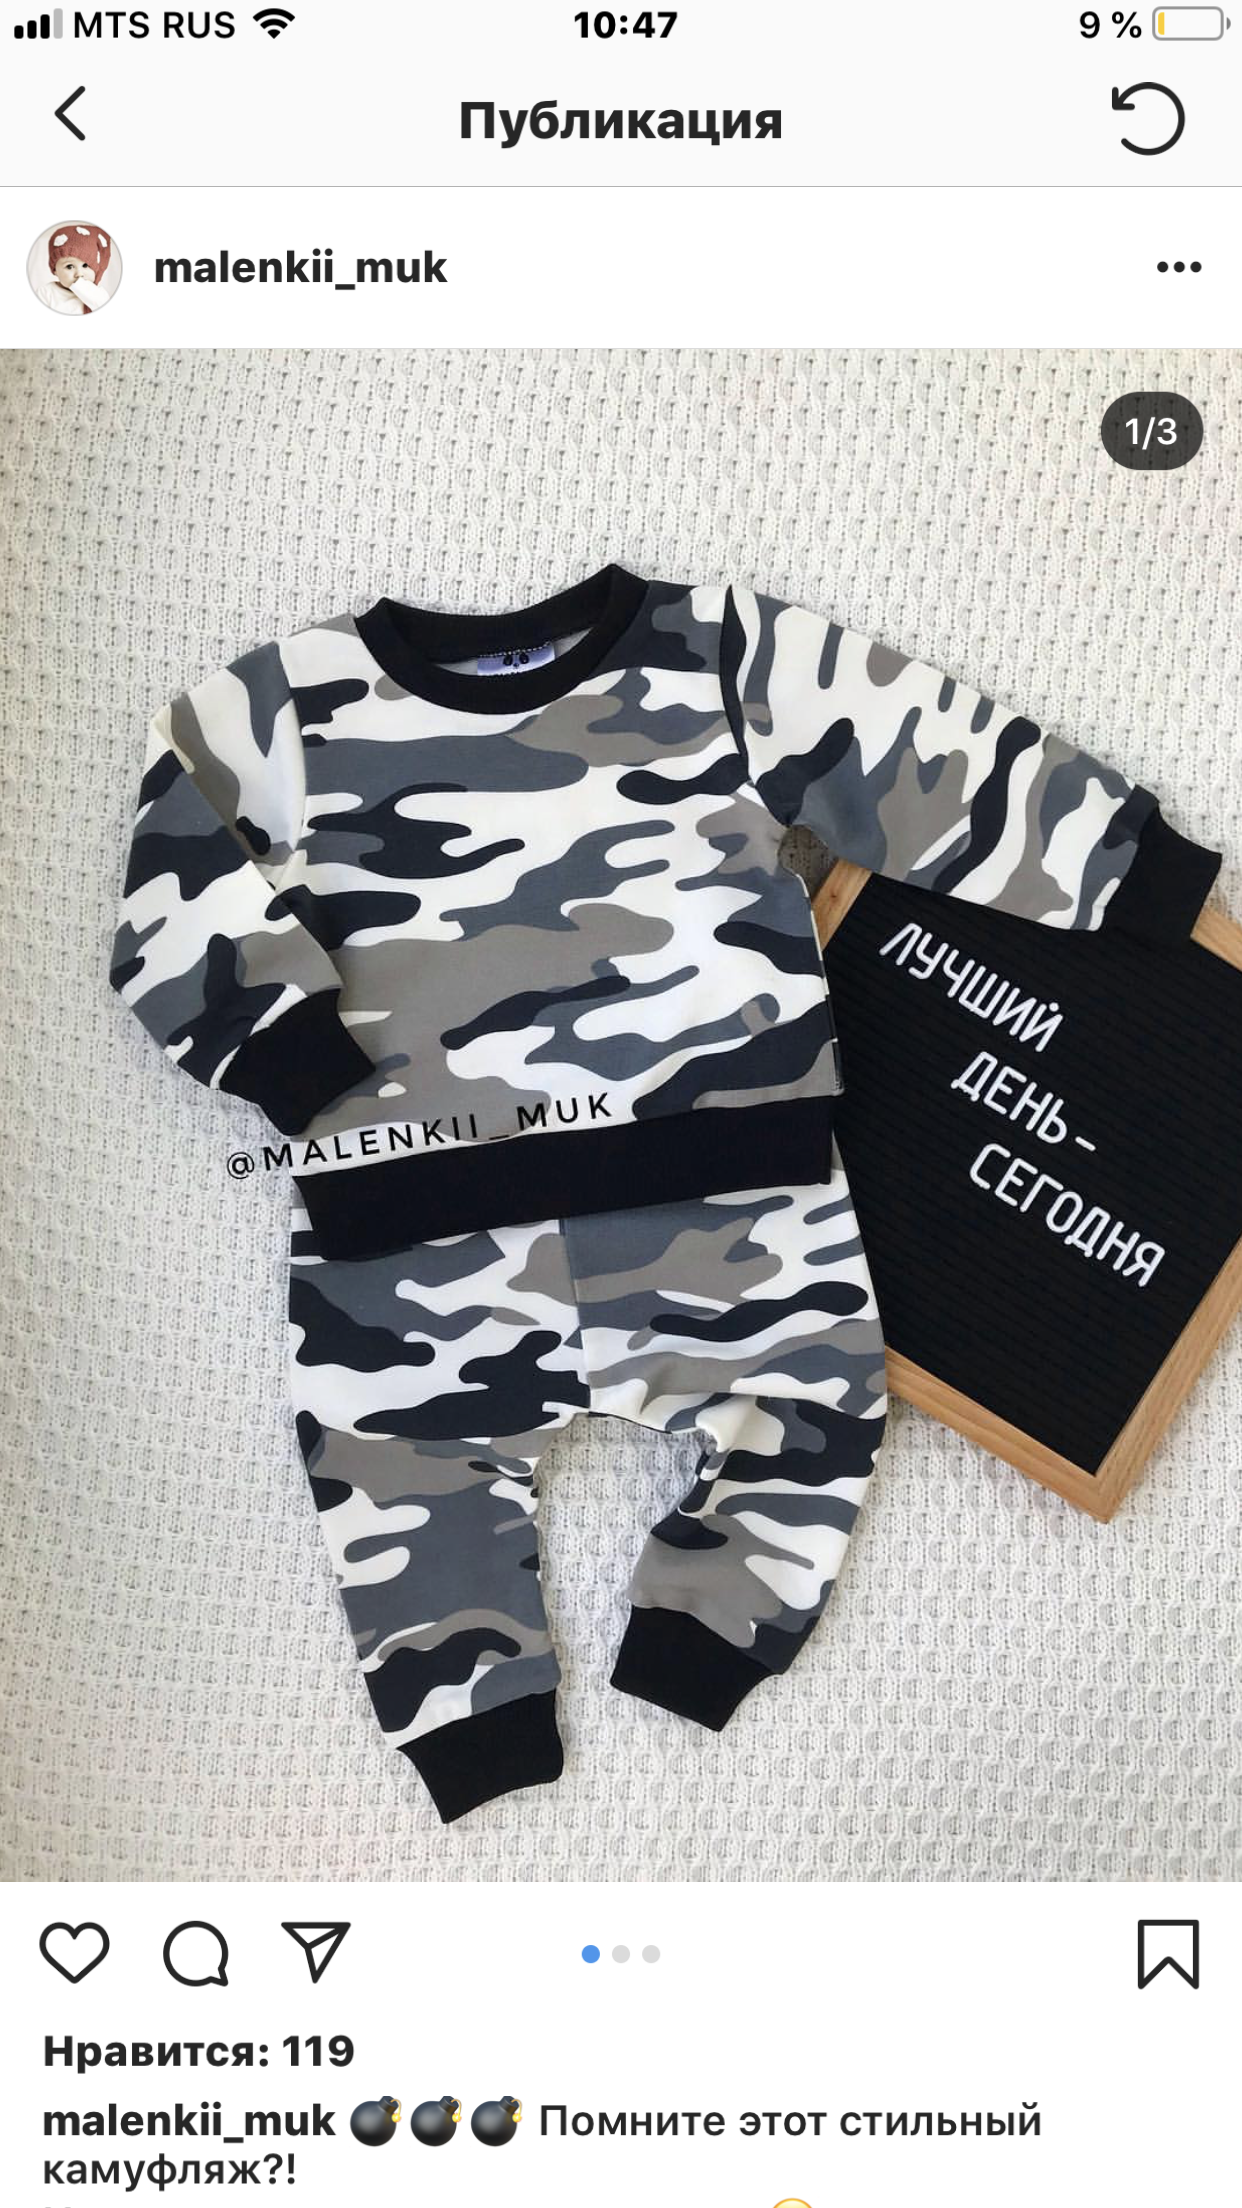 I am looking for baby clothes for Instagram store! For kids 0-2 years! Clothing must be beautiful and fashionable.